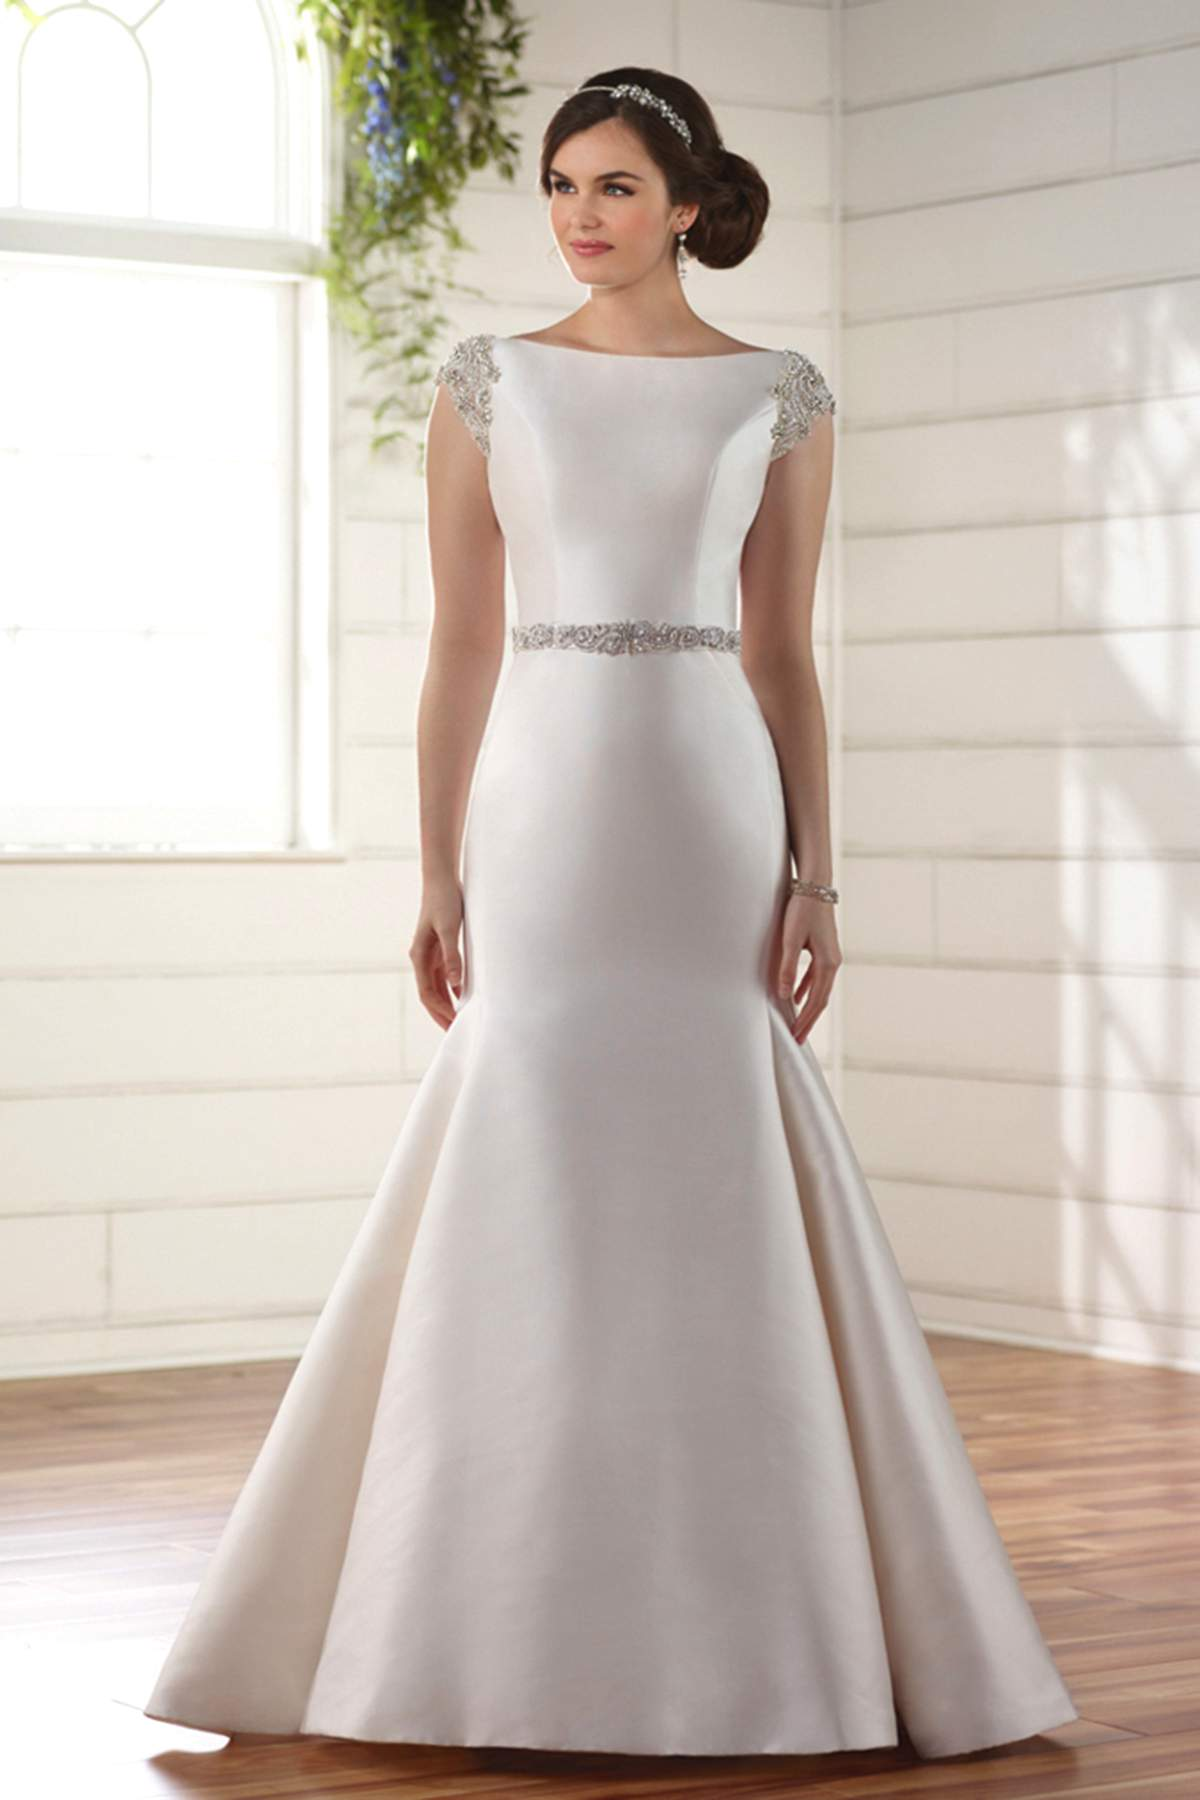 Style D2241 by Essense of Australia - Find Your Dream Dress